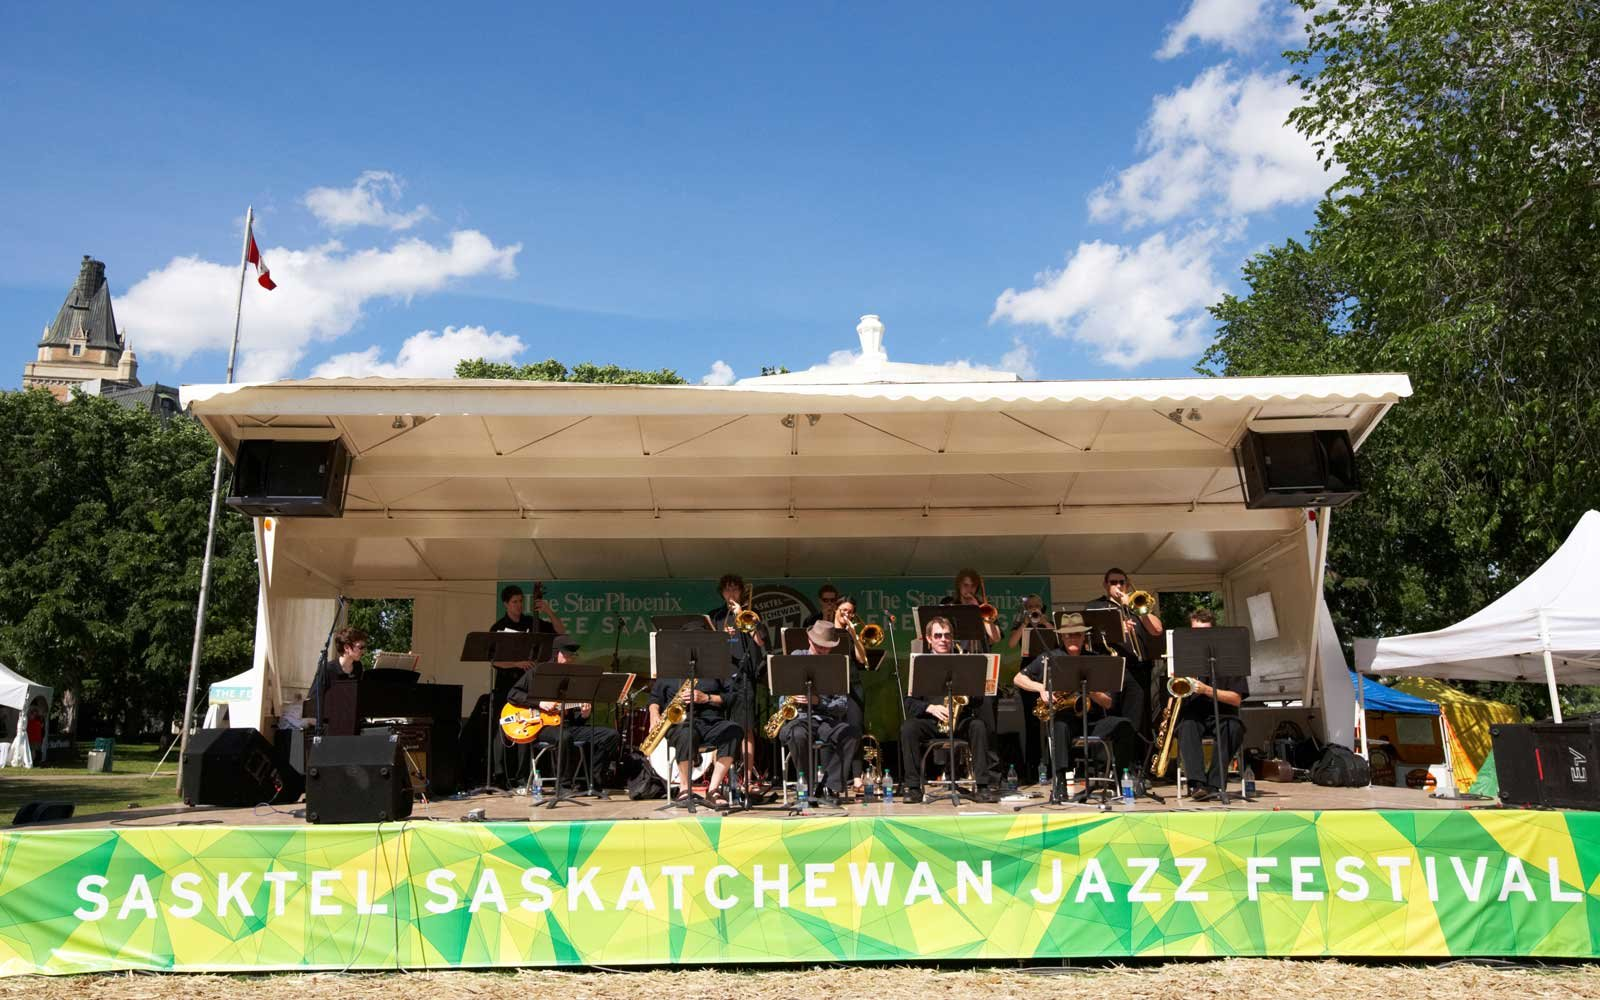 Band playing on stage at the Saskatoon Saskatchewan Jazz Festival in Canada